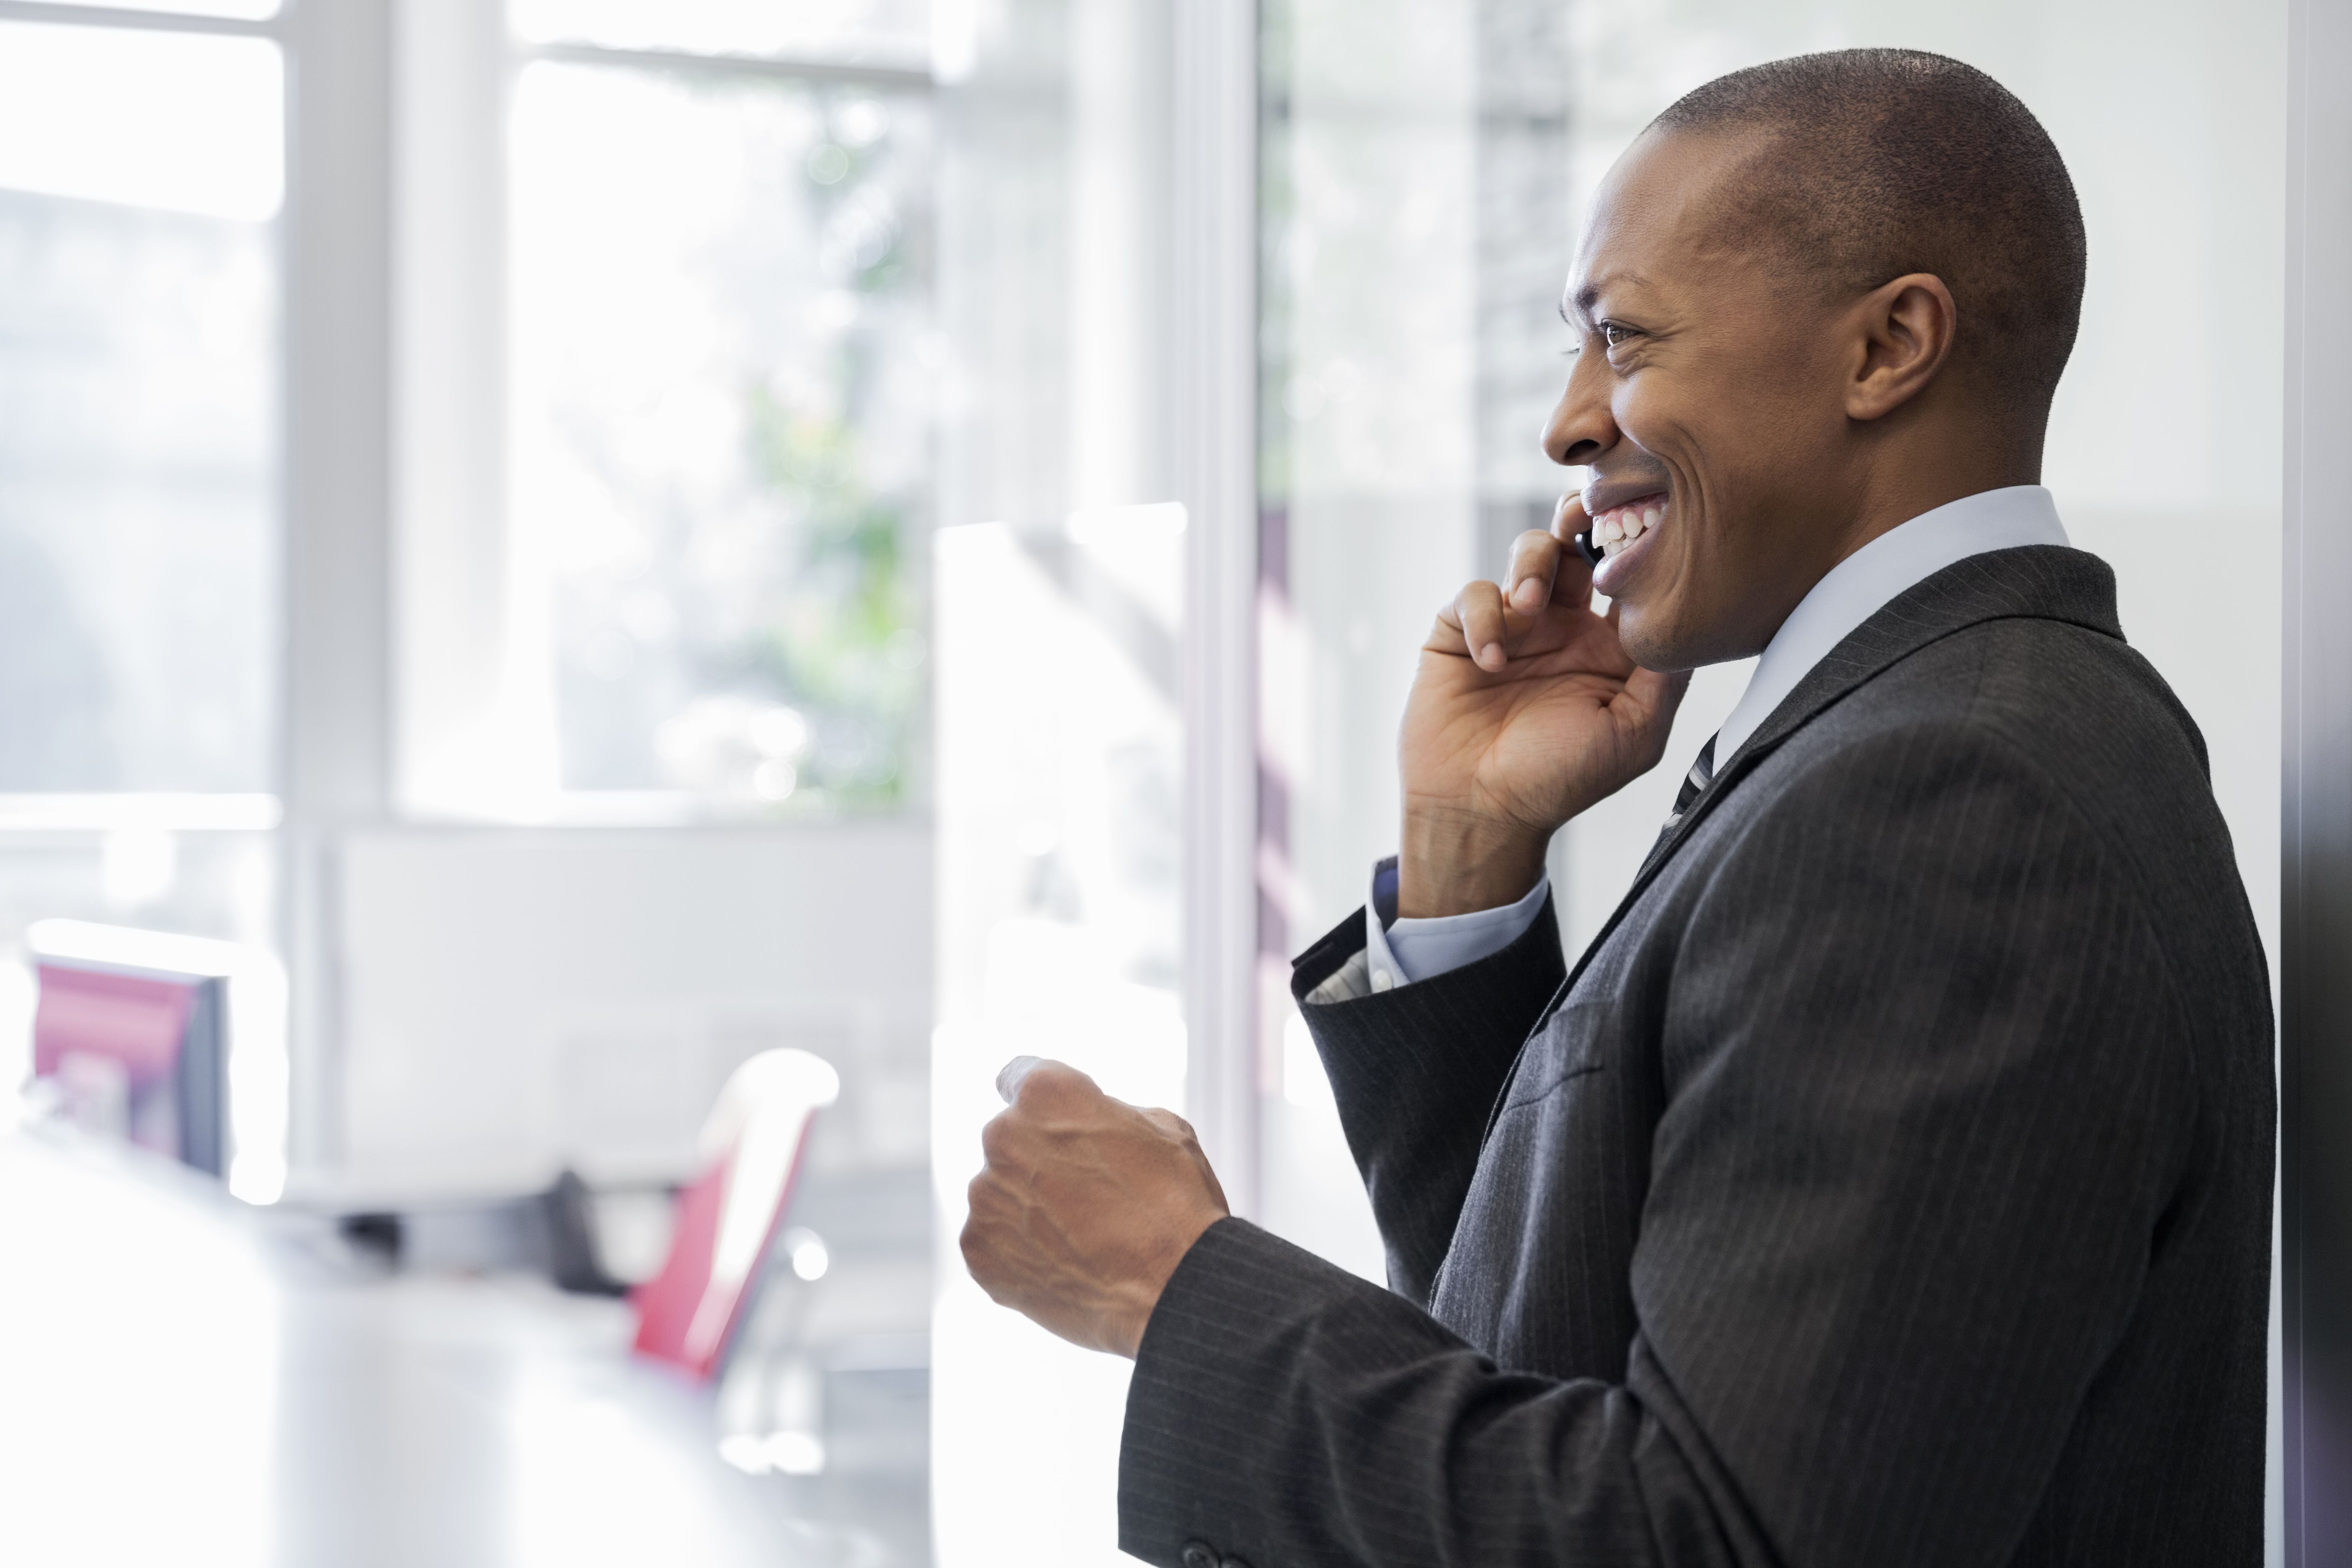 Smiling businessman talking on mobile phone in office